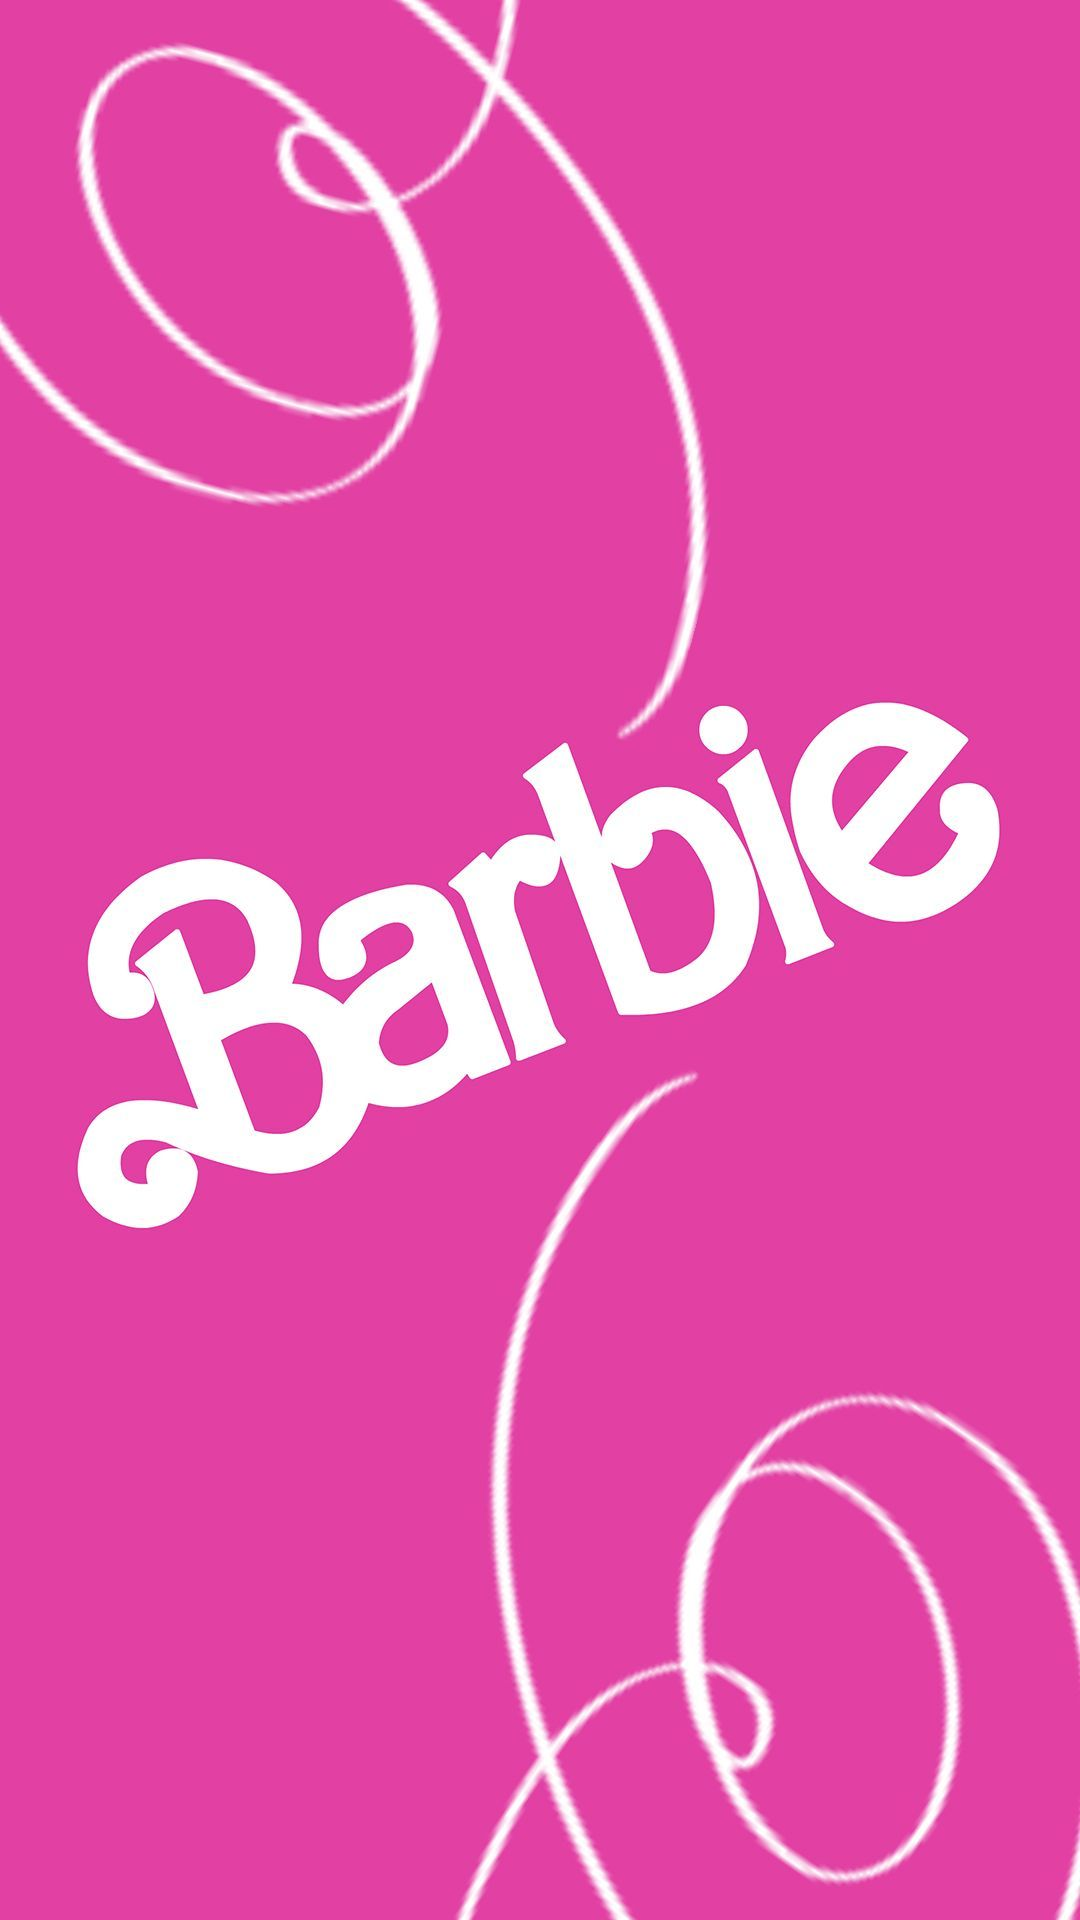 Barbie Wallpapers Top Free Barbie Backgrounds Wallpaperaccess Barbie Cellphone Wallpaper Phone Wallpaper